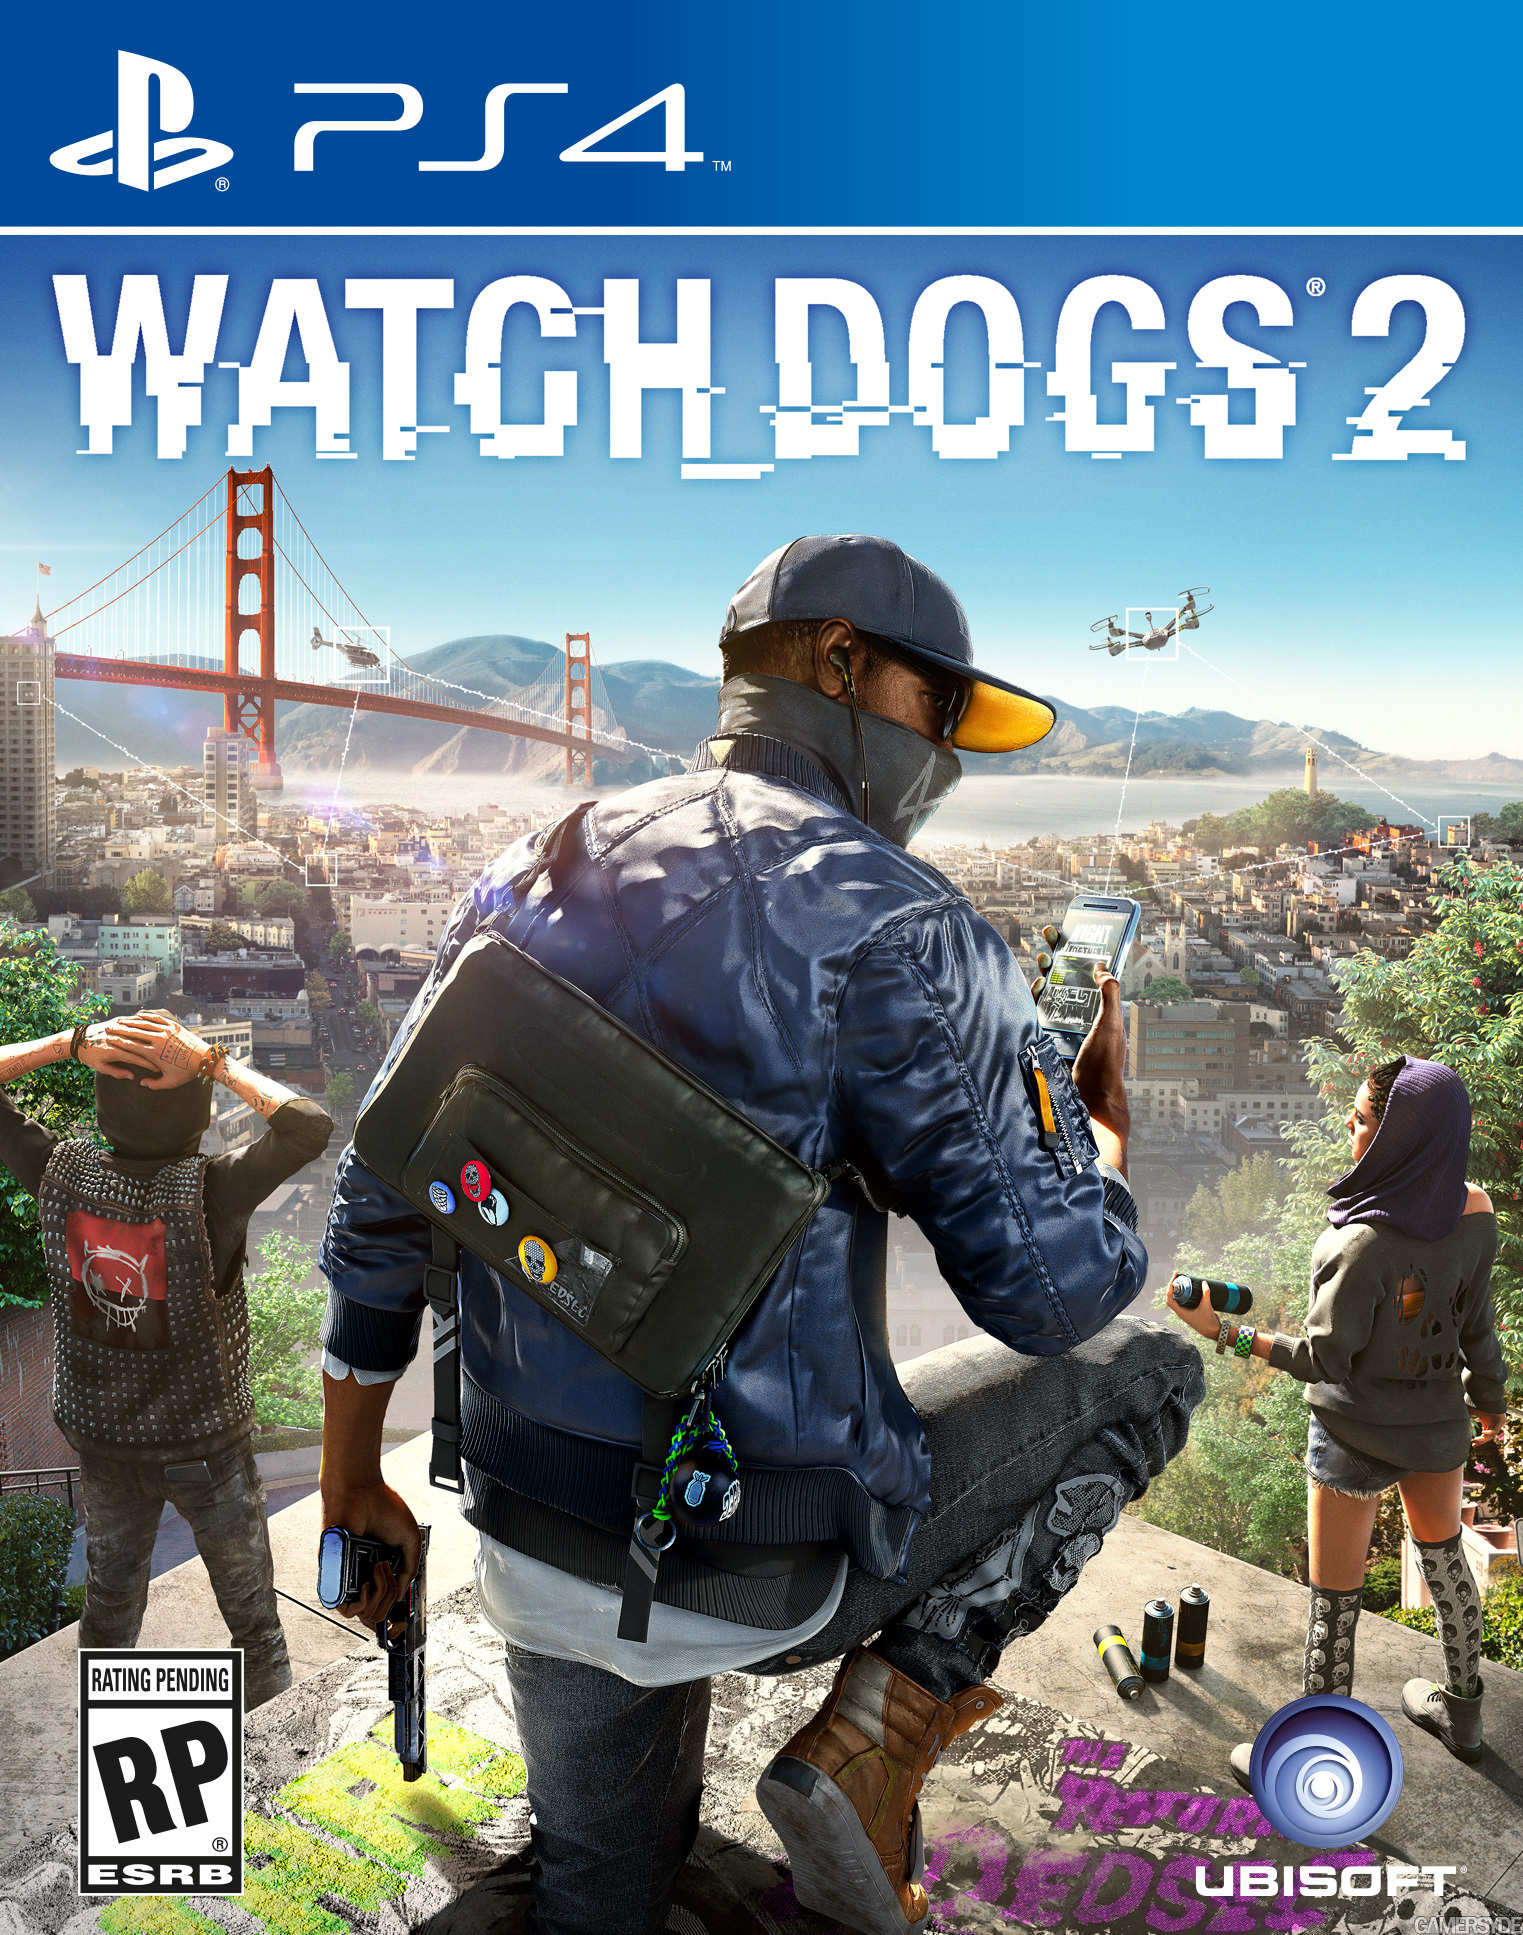 Watch Dogs 2 - Gold Edition [PS4] 5.05 / 6.72 / 7.02 [EUR] (2016) [Русский] (v1.17)